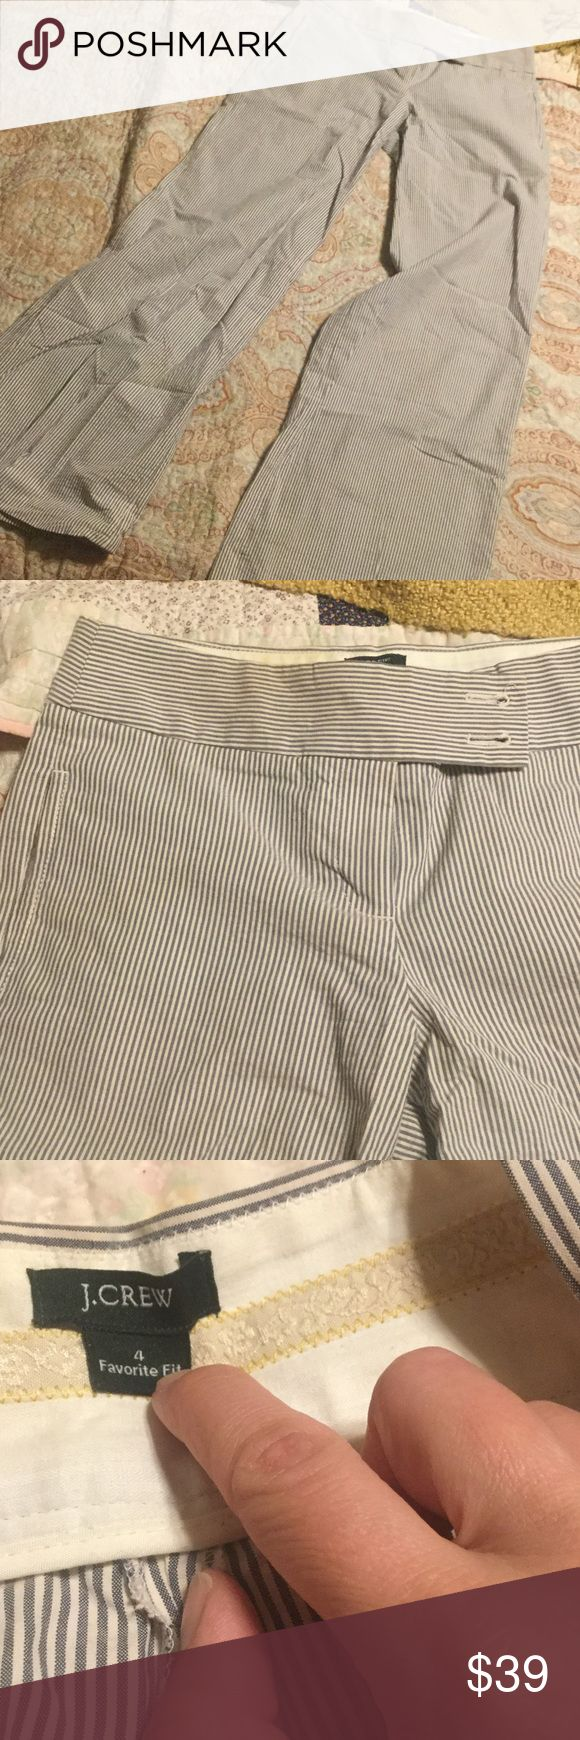 J Crew seersucker pants, size 4 Nothing says summer like seersucker! Enjoy these high quality J Crew seersucker pants all summer long! Size 4, excellent used condition. Please ask for additional details. J. Crew Pants Trousers